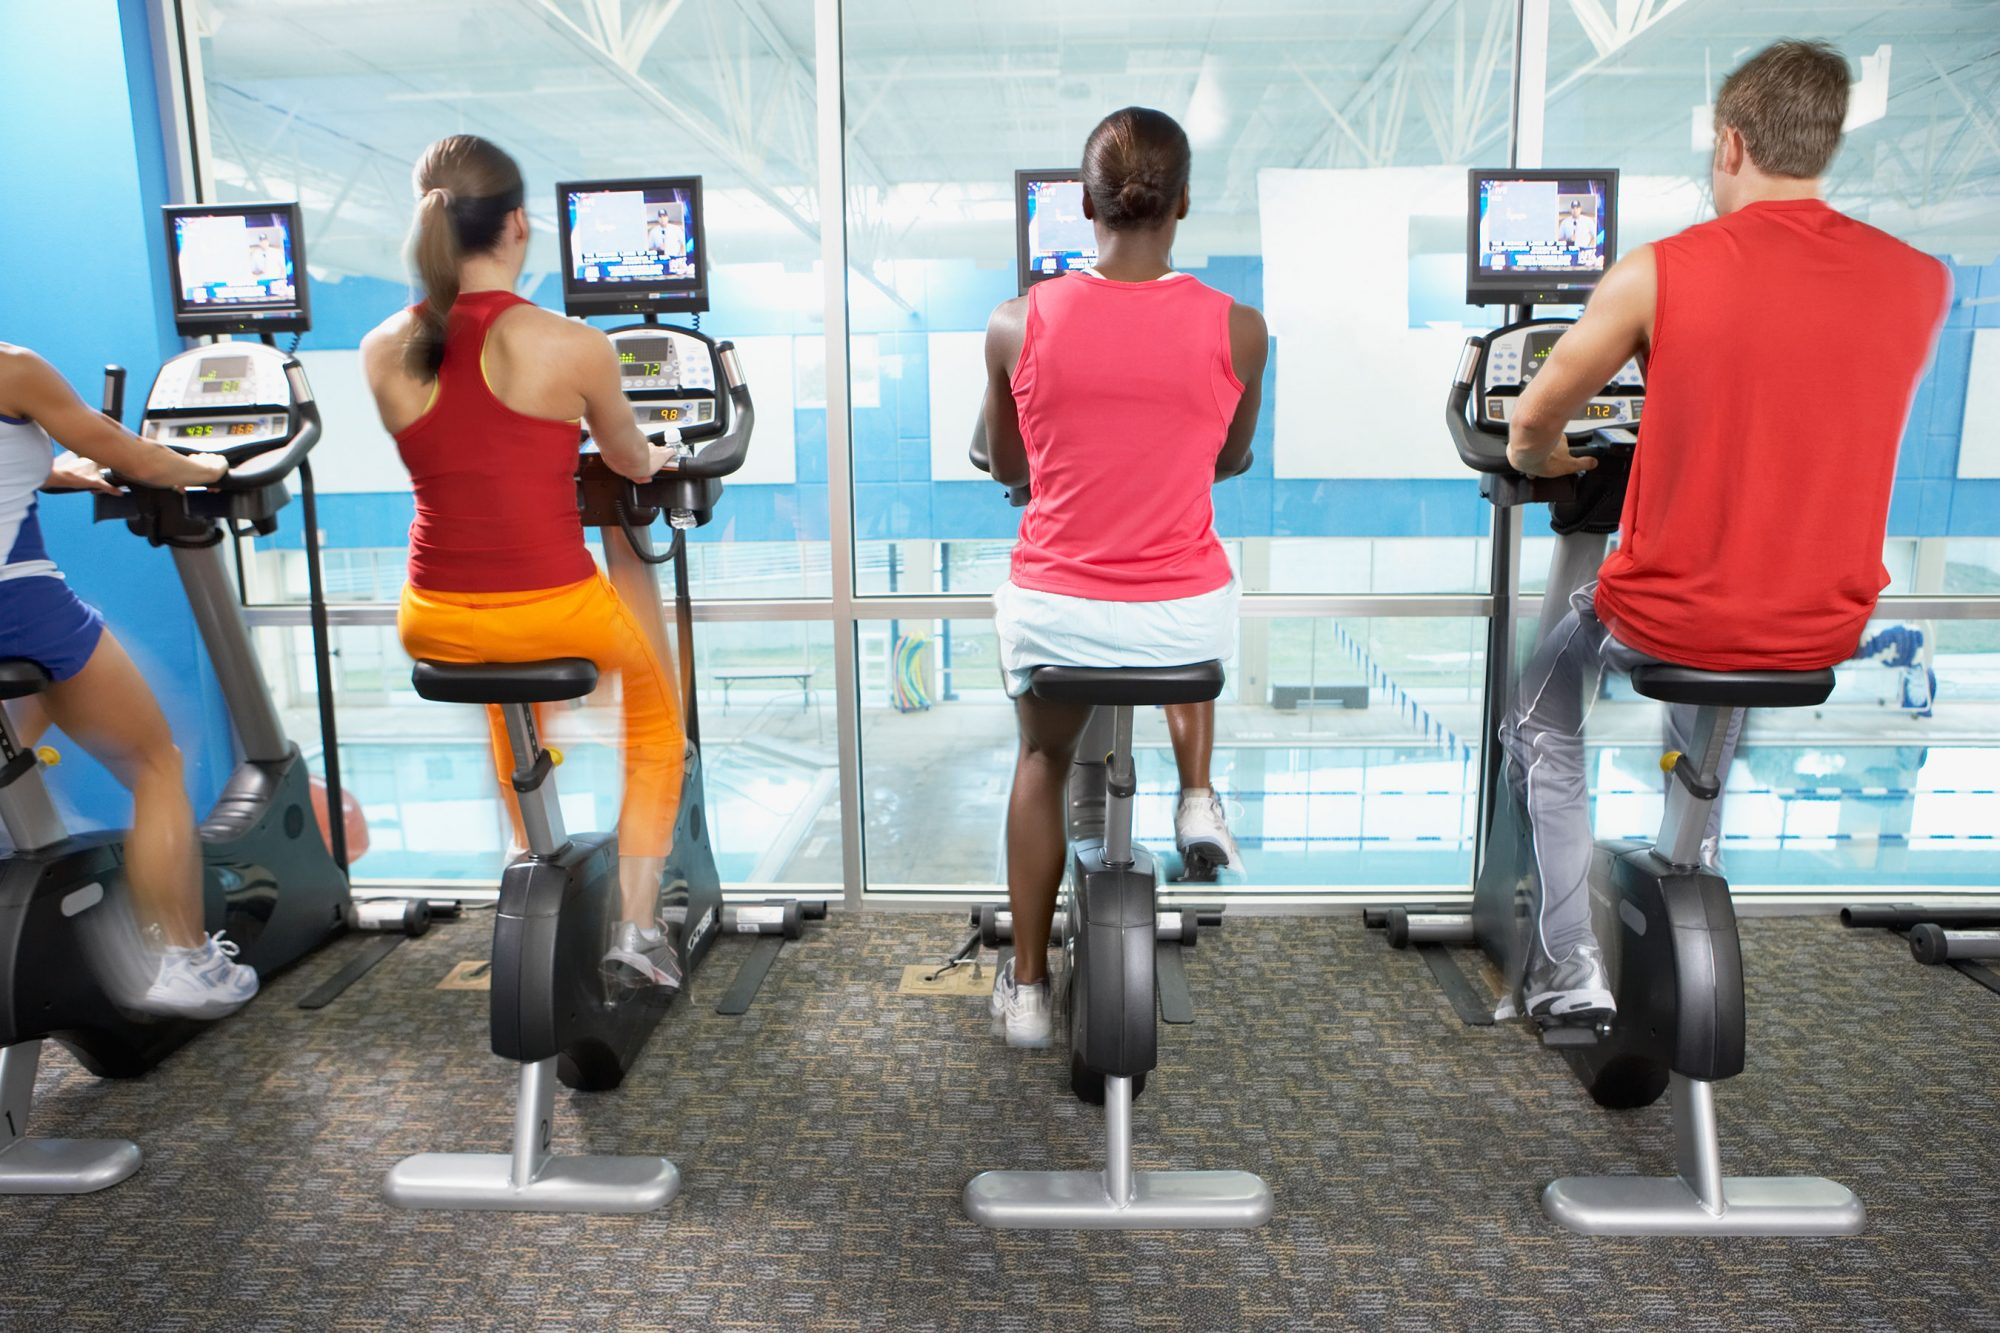 Men and women on cycling machines